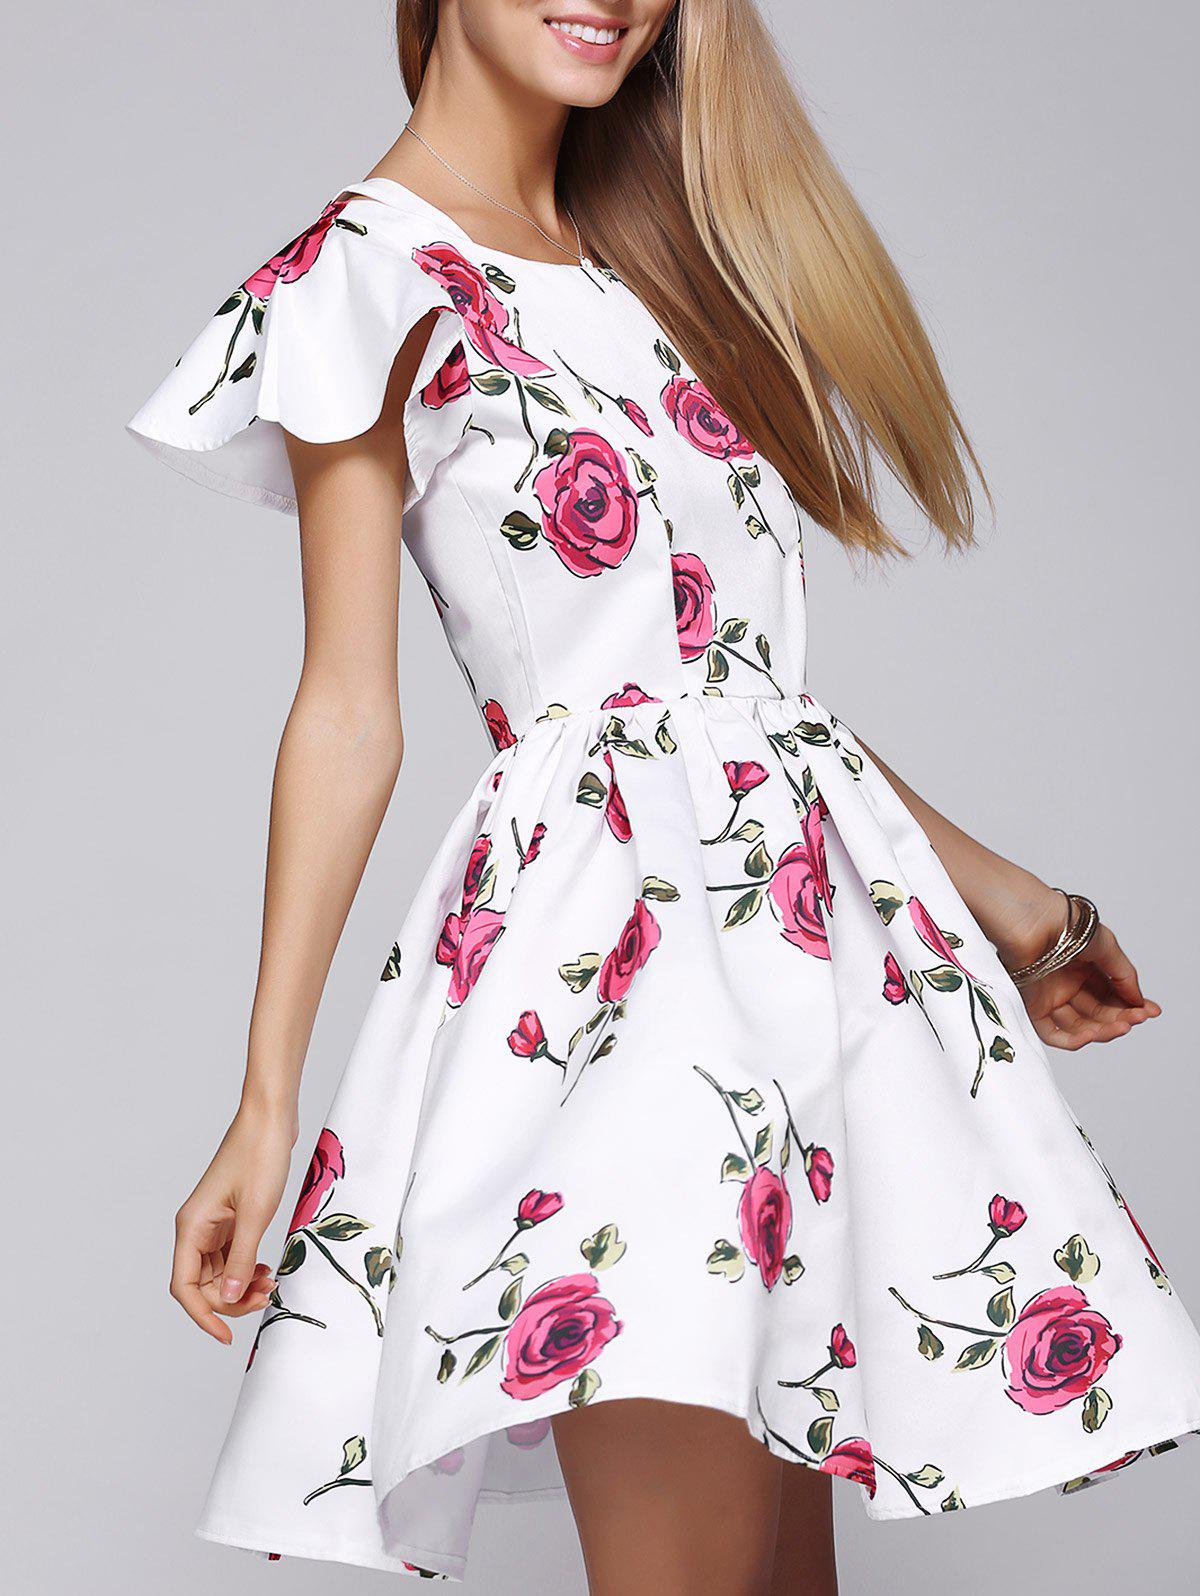 Stylish Women's Floral Print Butterfly Sleeve Dress